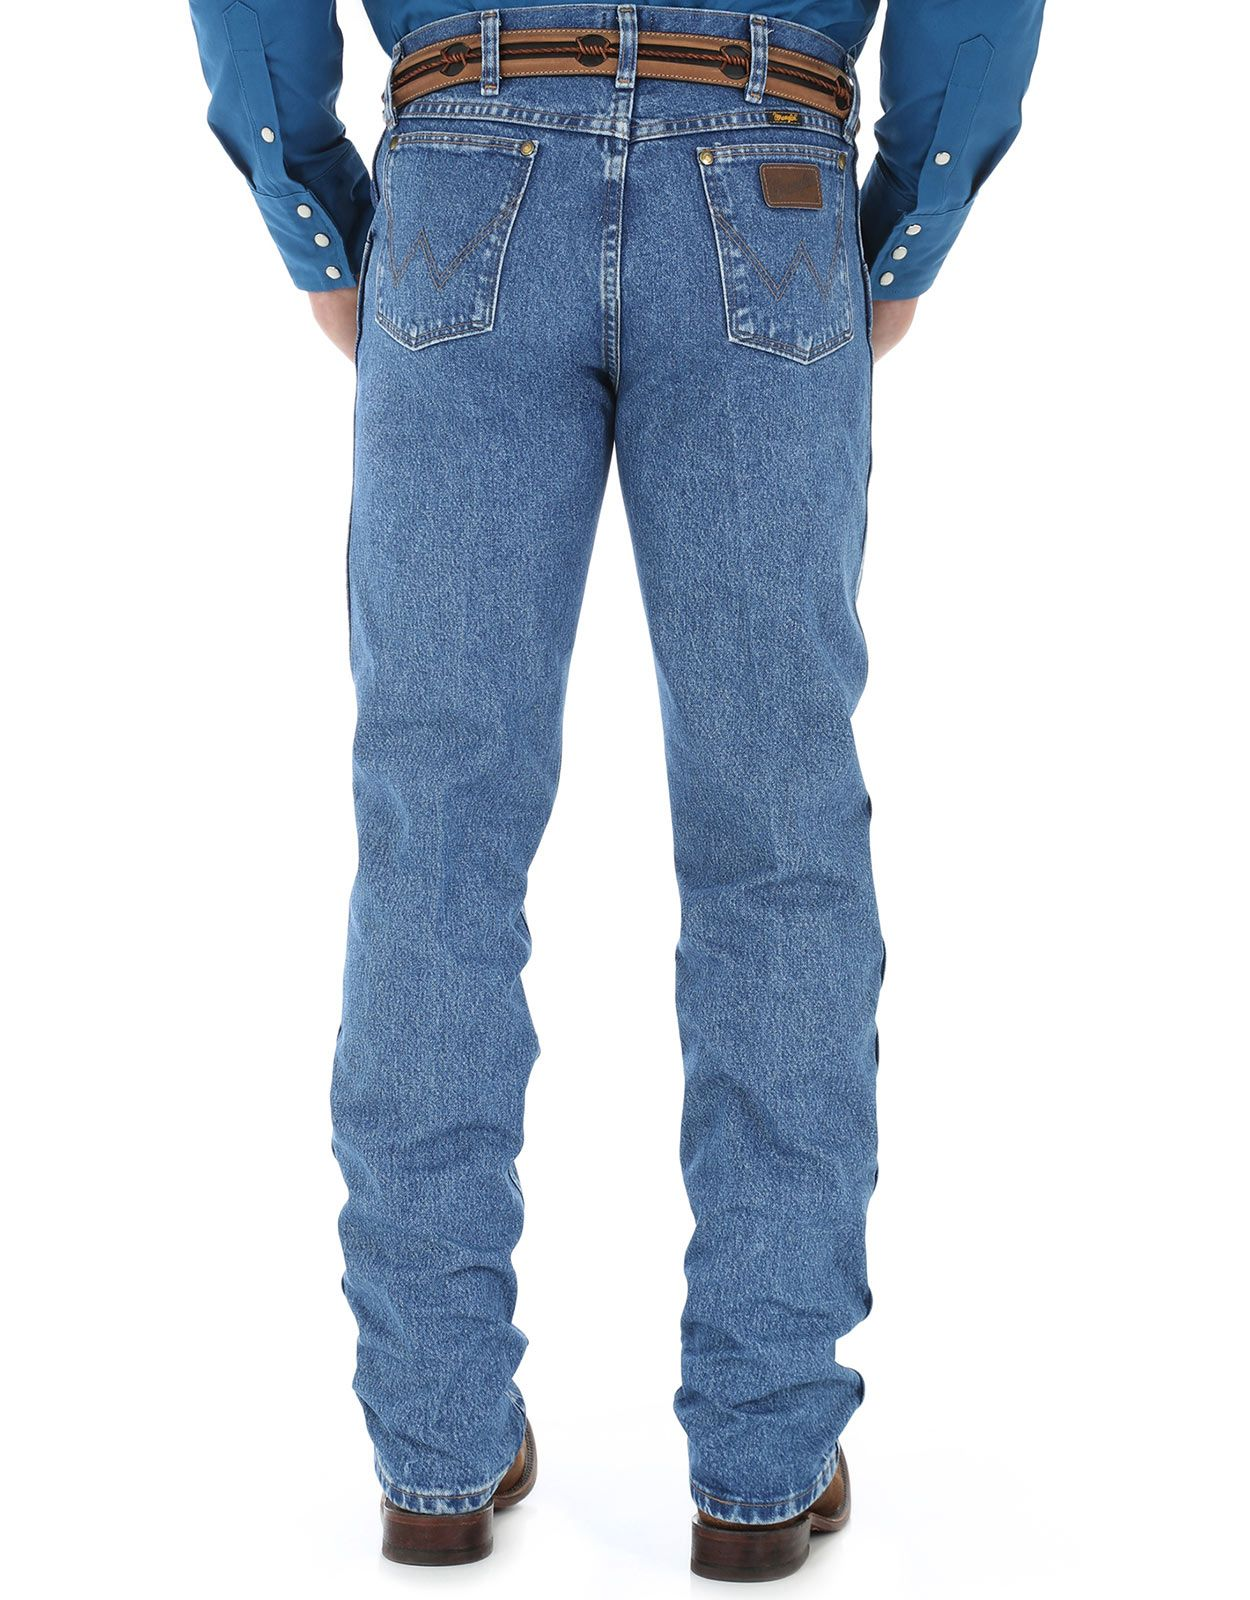 Wrangler Men's 47 Mid Rise Regular Fit Boot Cut Jeans - Stonewash